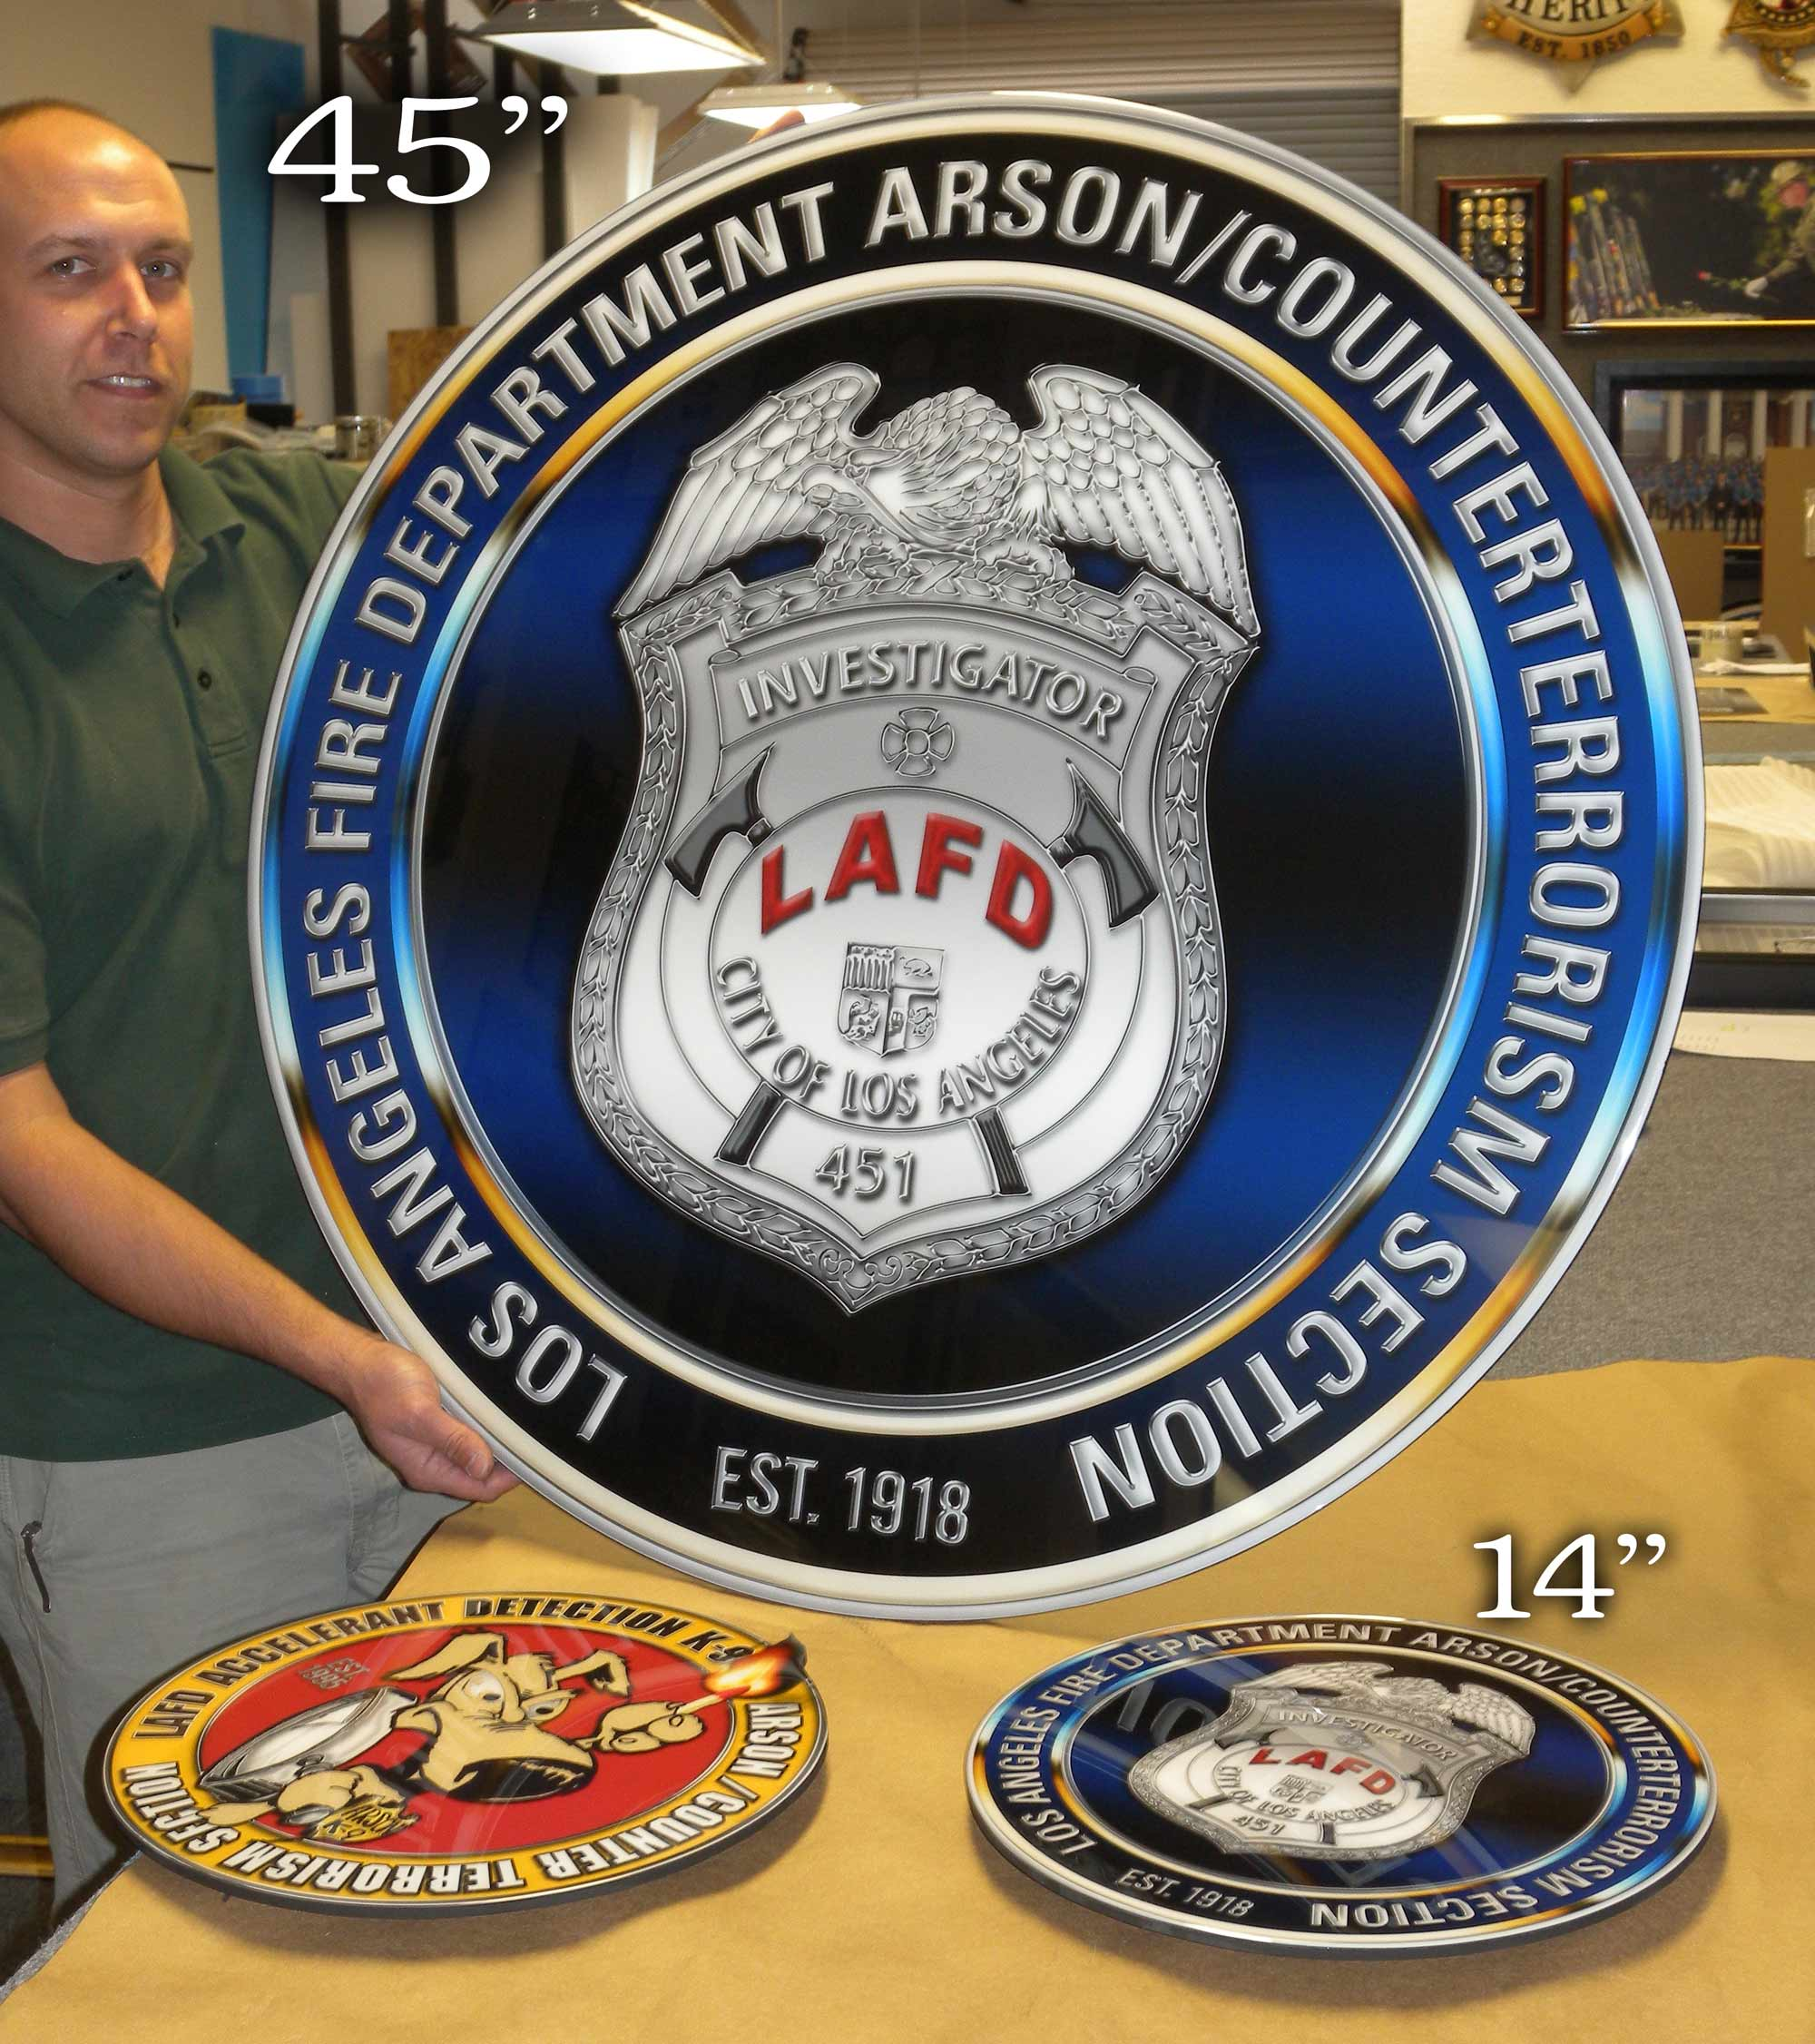 Fontana pd vacation patrol patches